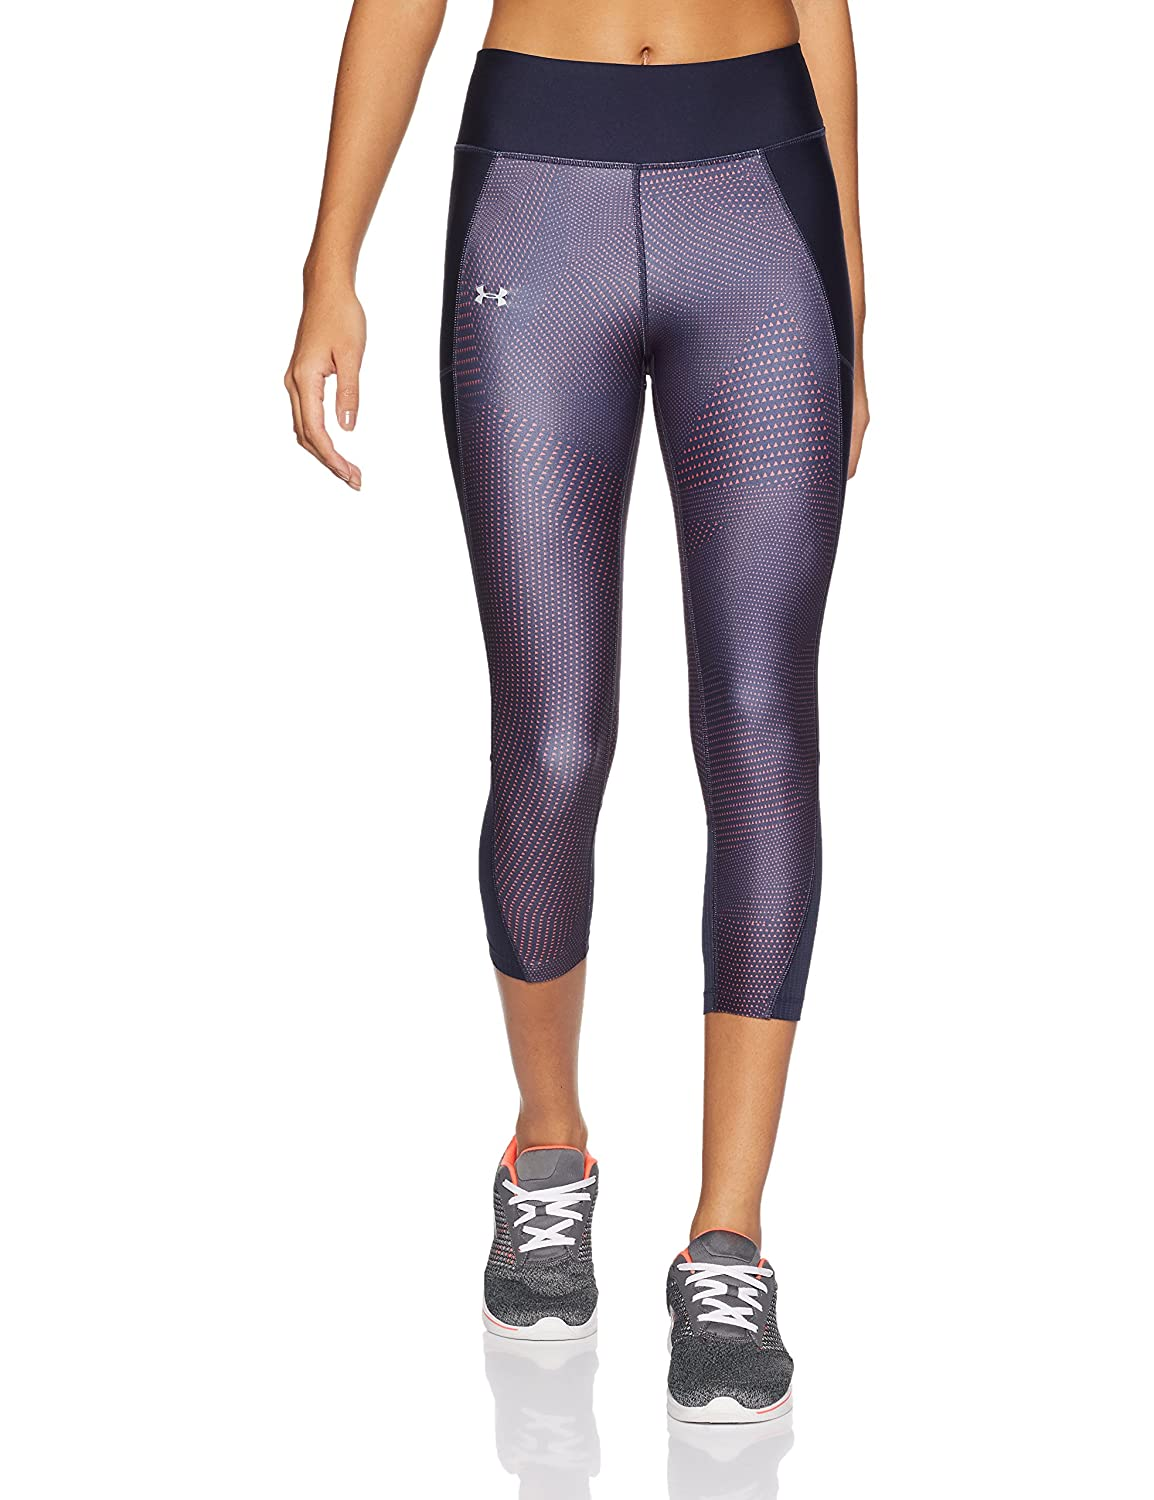 Under Armour Women's Fly-By Printed Capri Under Armour Apparel 1297934